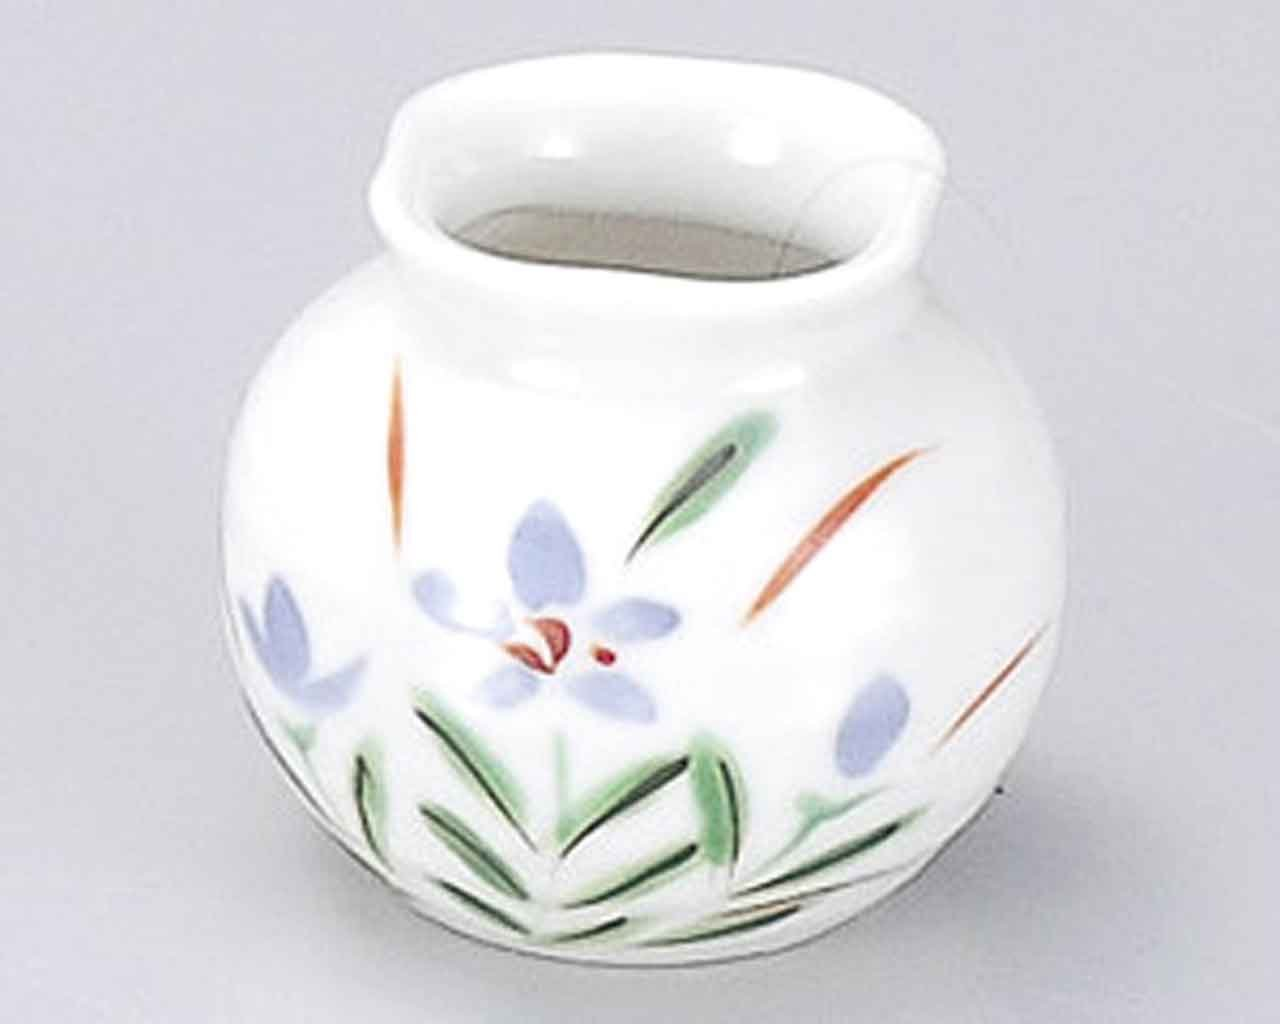 Akikusa 1.9inch Set of 5 Toothpick holders White porcelain Made in Japan by Watou.asia